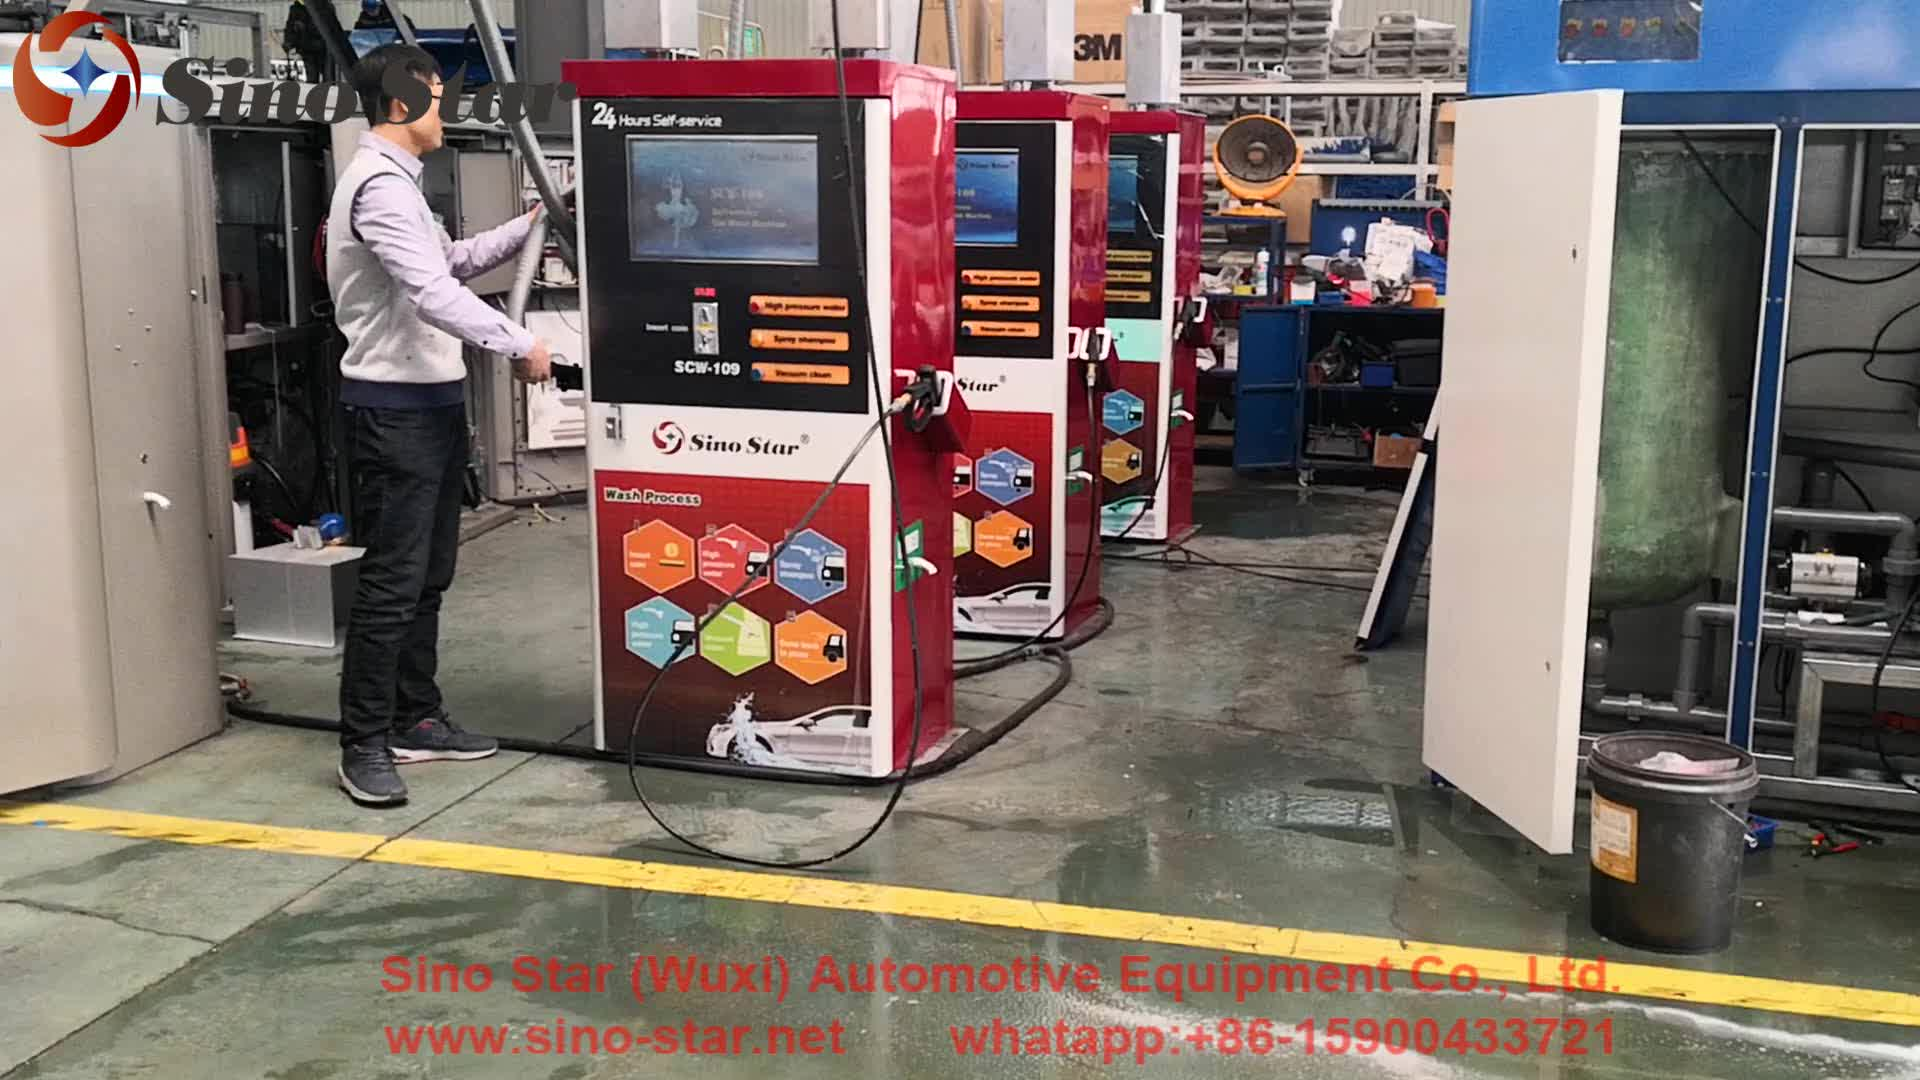 (SCW-109) 24 hours High pressure automatic self service car wash machine equipment with shampoo and vaccum clean function